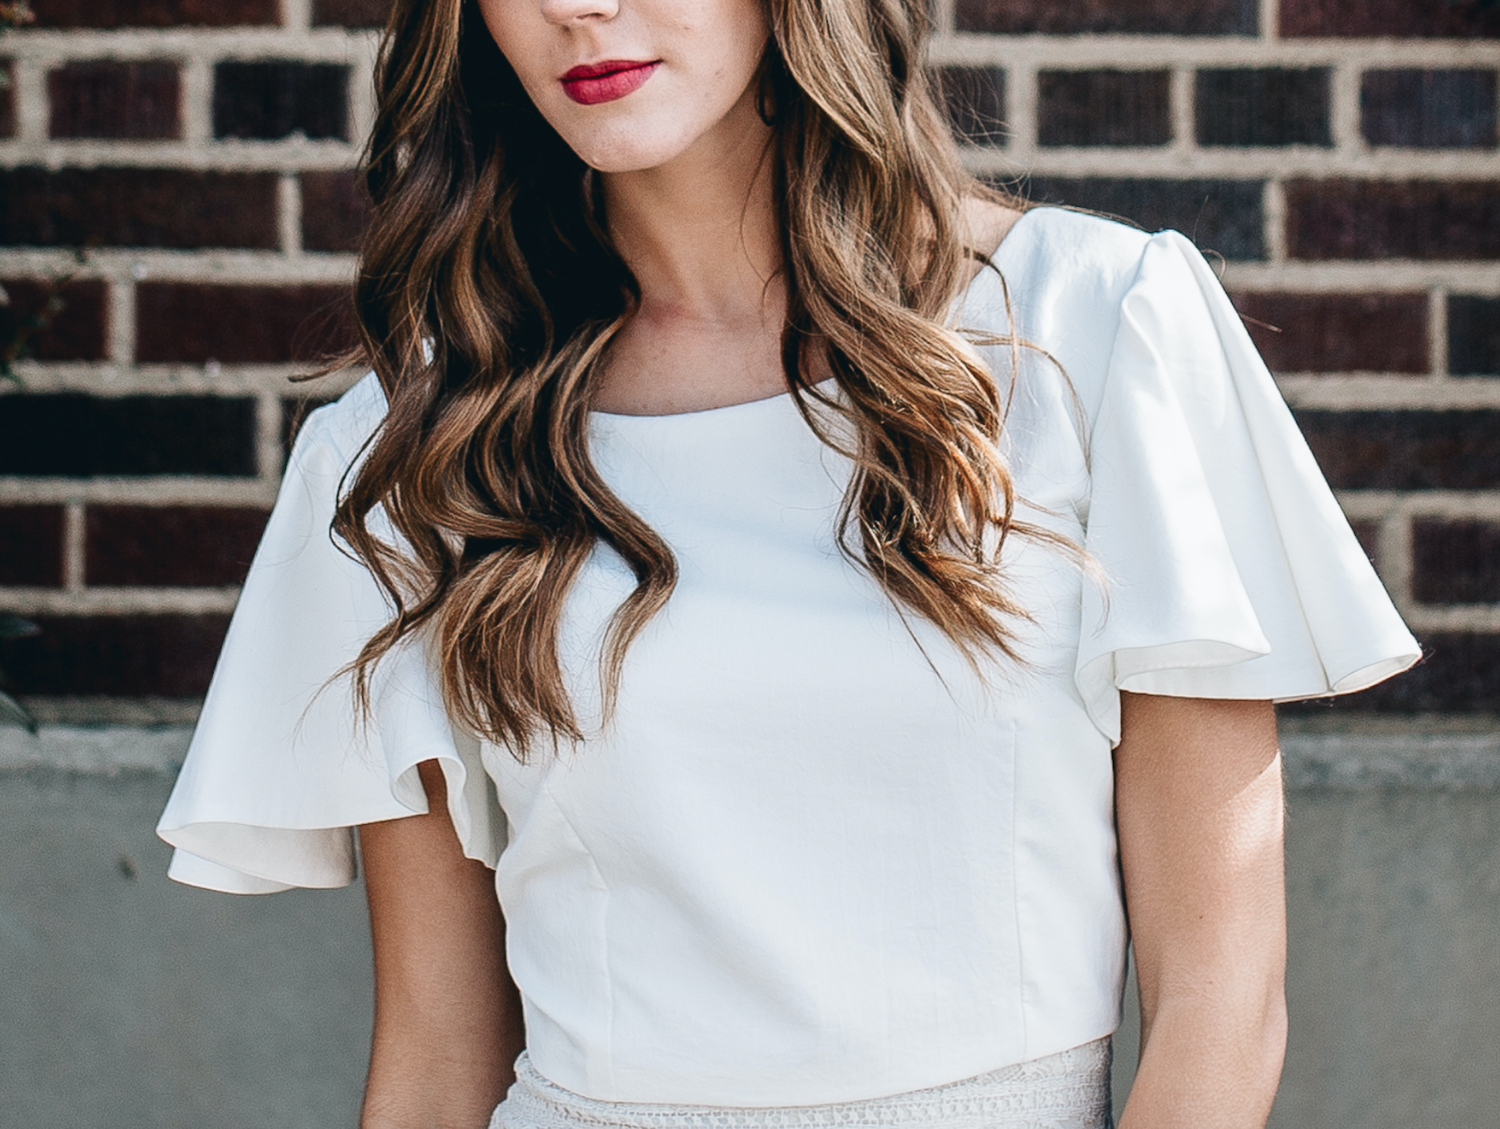 DETAILS  Styling by: Lucy Bergstrom  Photography by: Alice Cannon  Flutter Sleeve Top by: Natalie Wynn  Makeup by: Rachel Kae Jenkins  Rentals provided by: Refined Vintage Events  Model: Josilyn Harsh